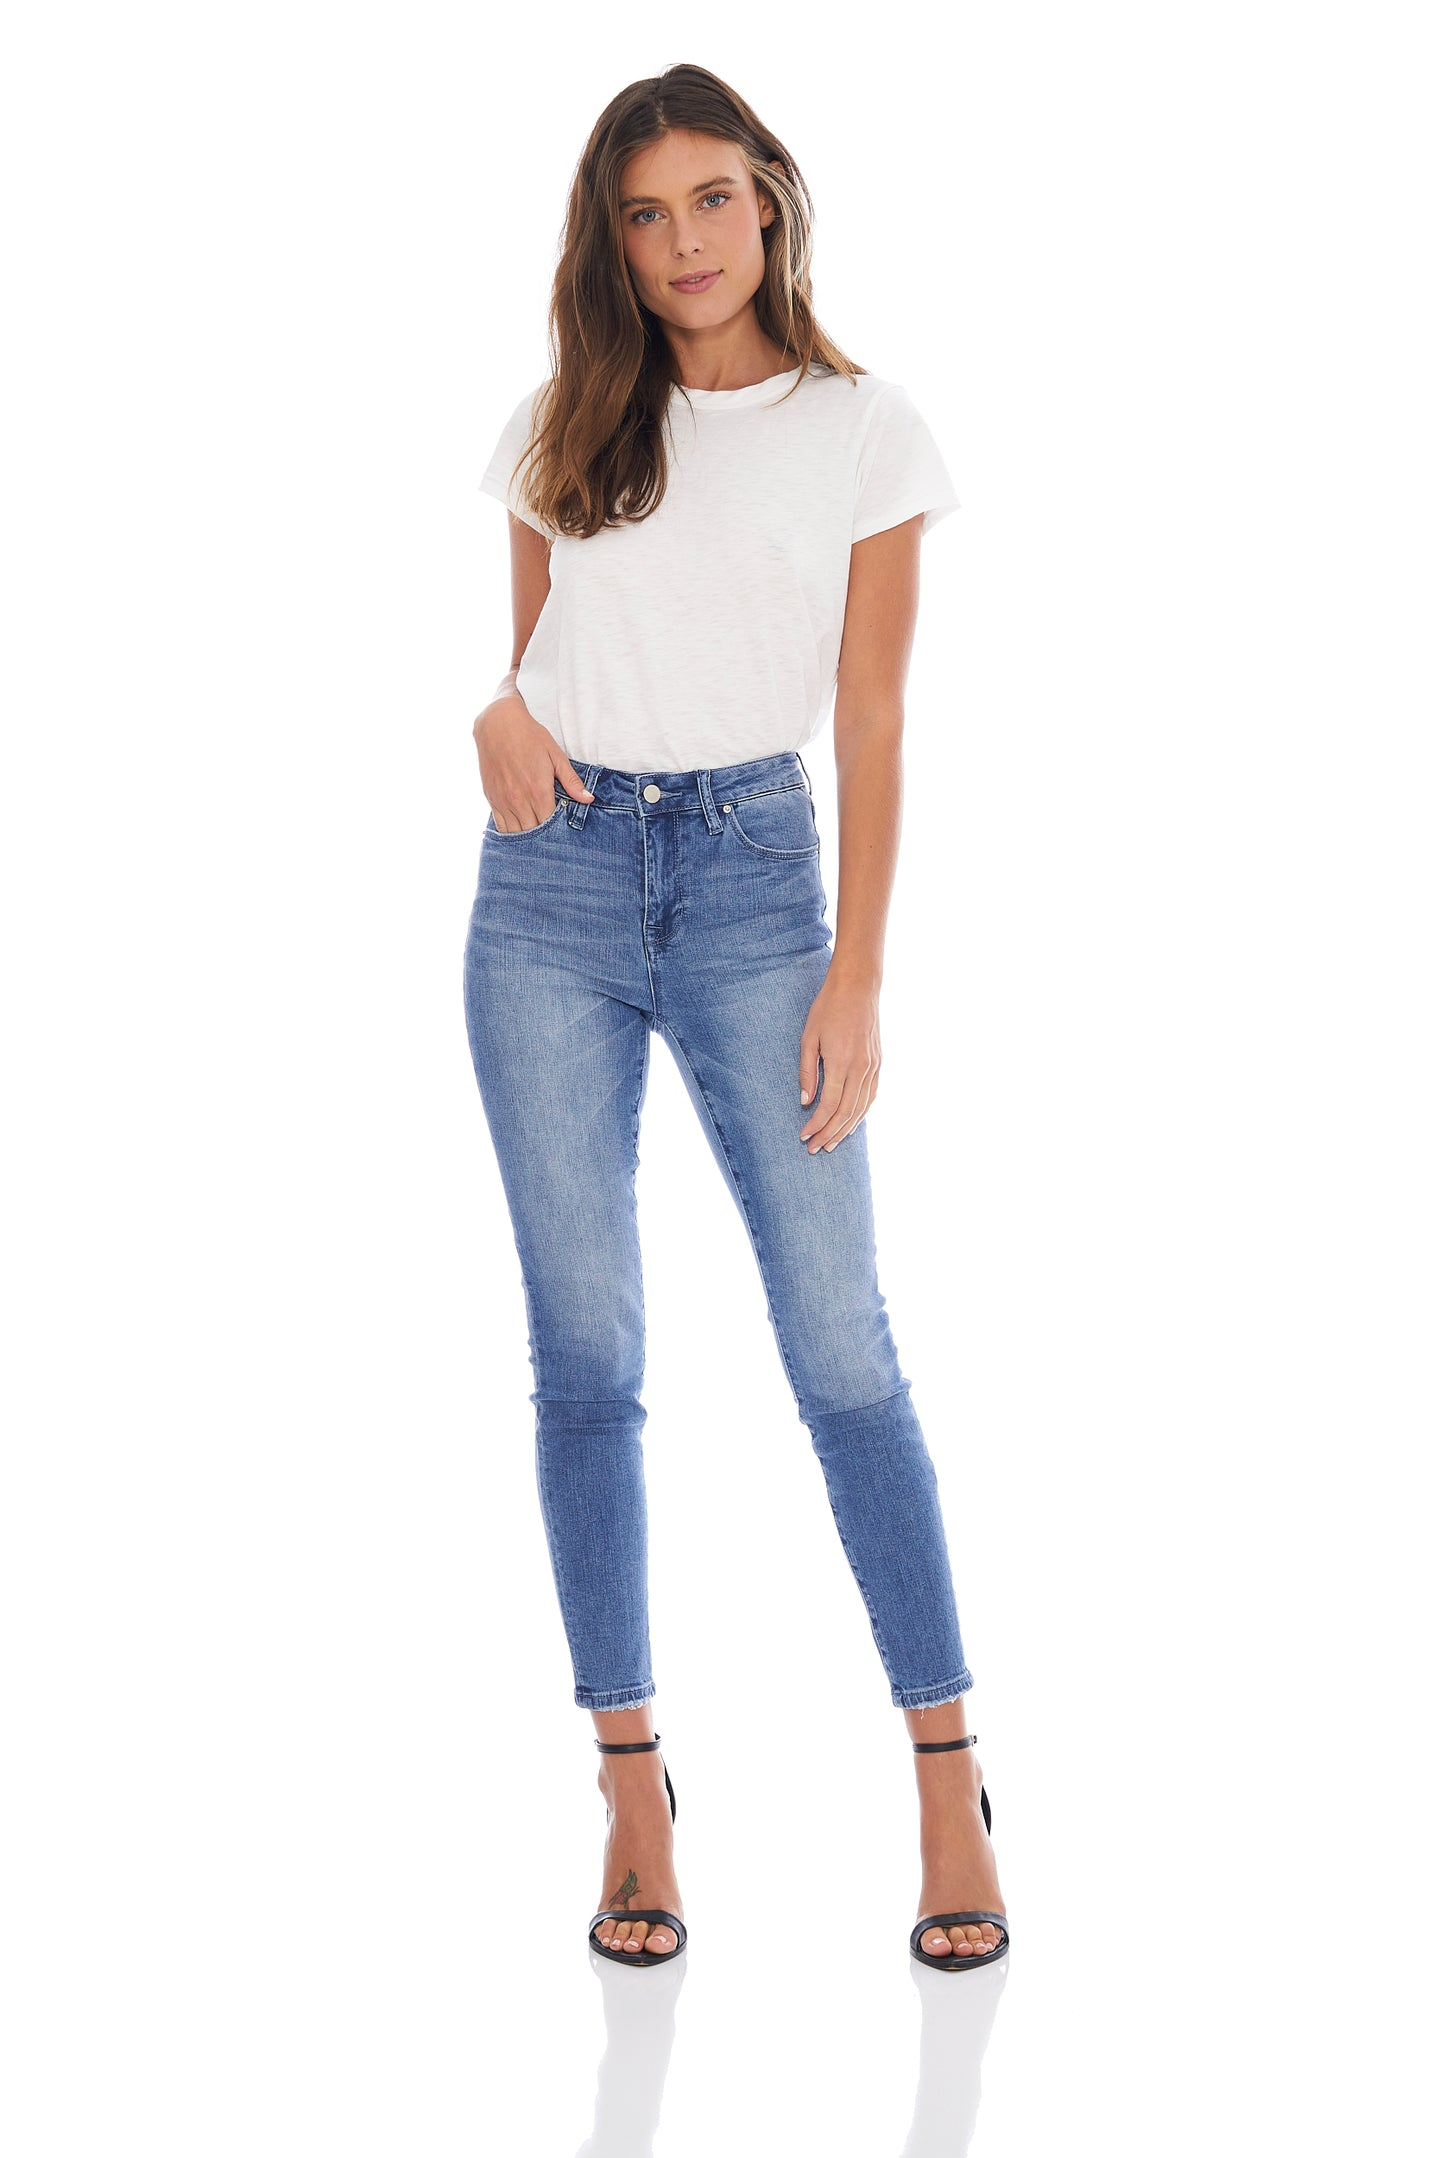 MADE IN BLUE MIA HIGH RISE SKINNY - LIGHT WASH